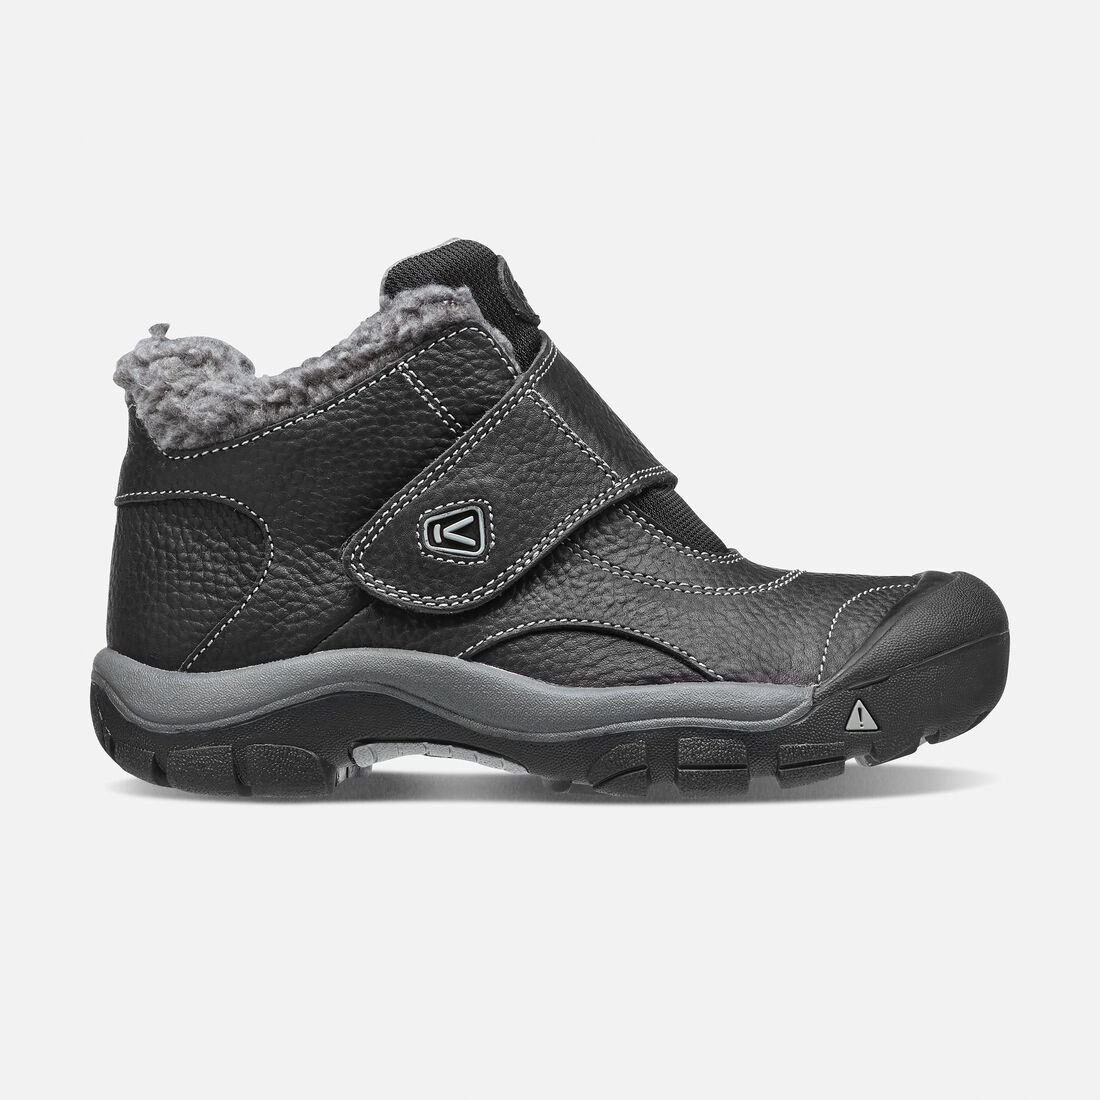 OLDER KIDS' KOOTENAY BOOTS in Black/Neutral Gray - large view.